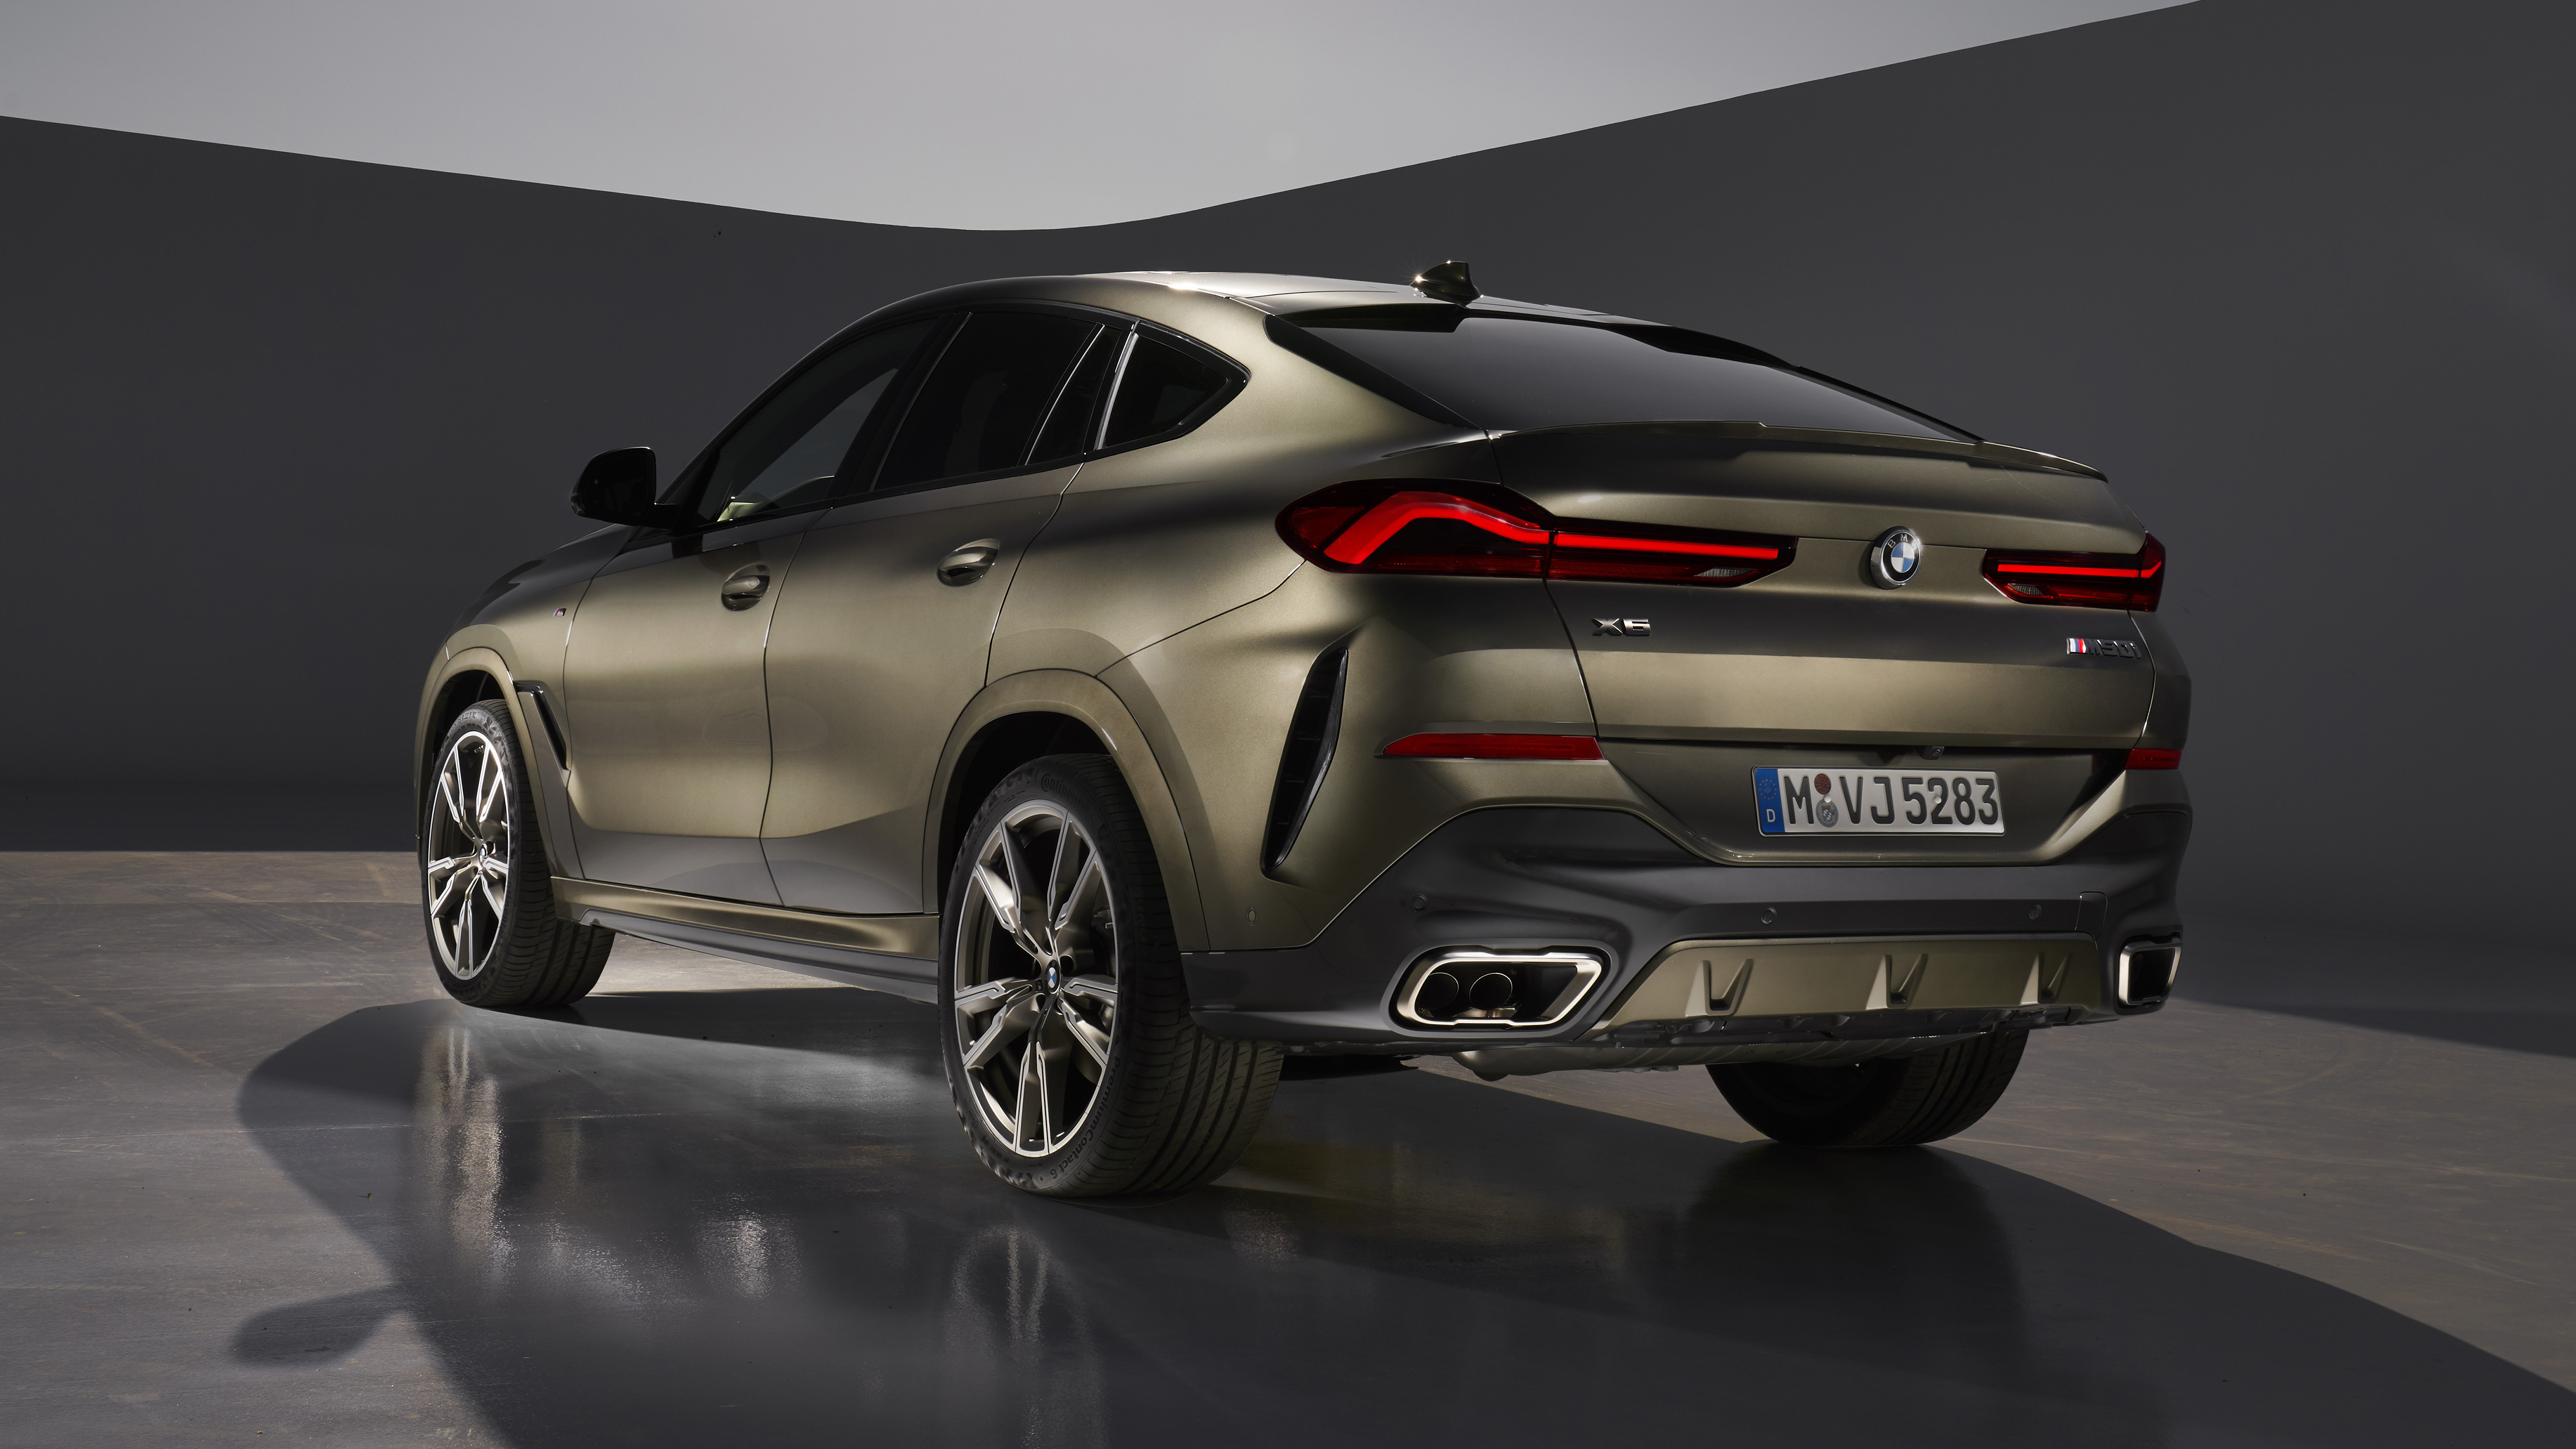 Certified Pre Owned Bmw >> 2020 BMW X6 revealed, more distinct from X5 sibling | Autoblog